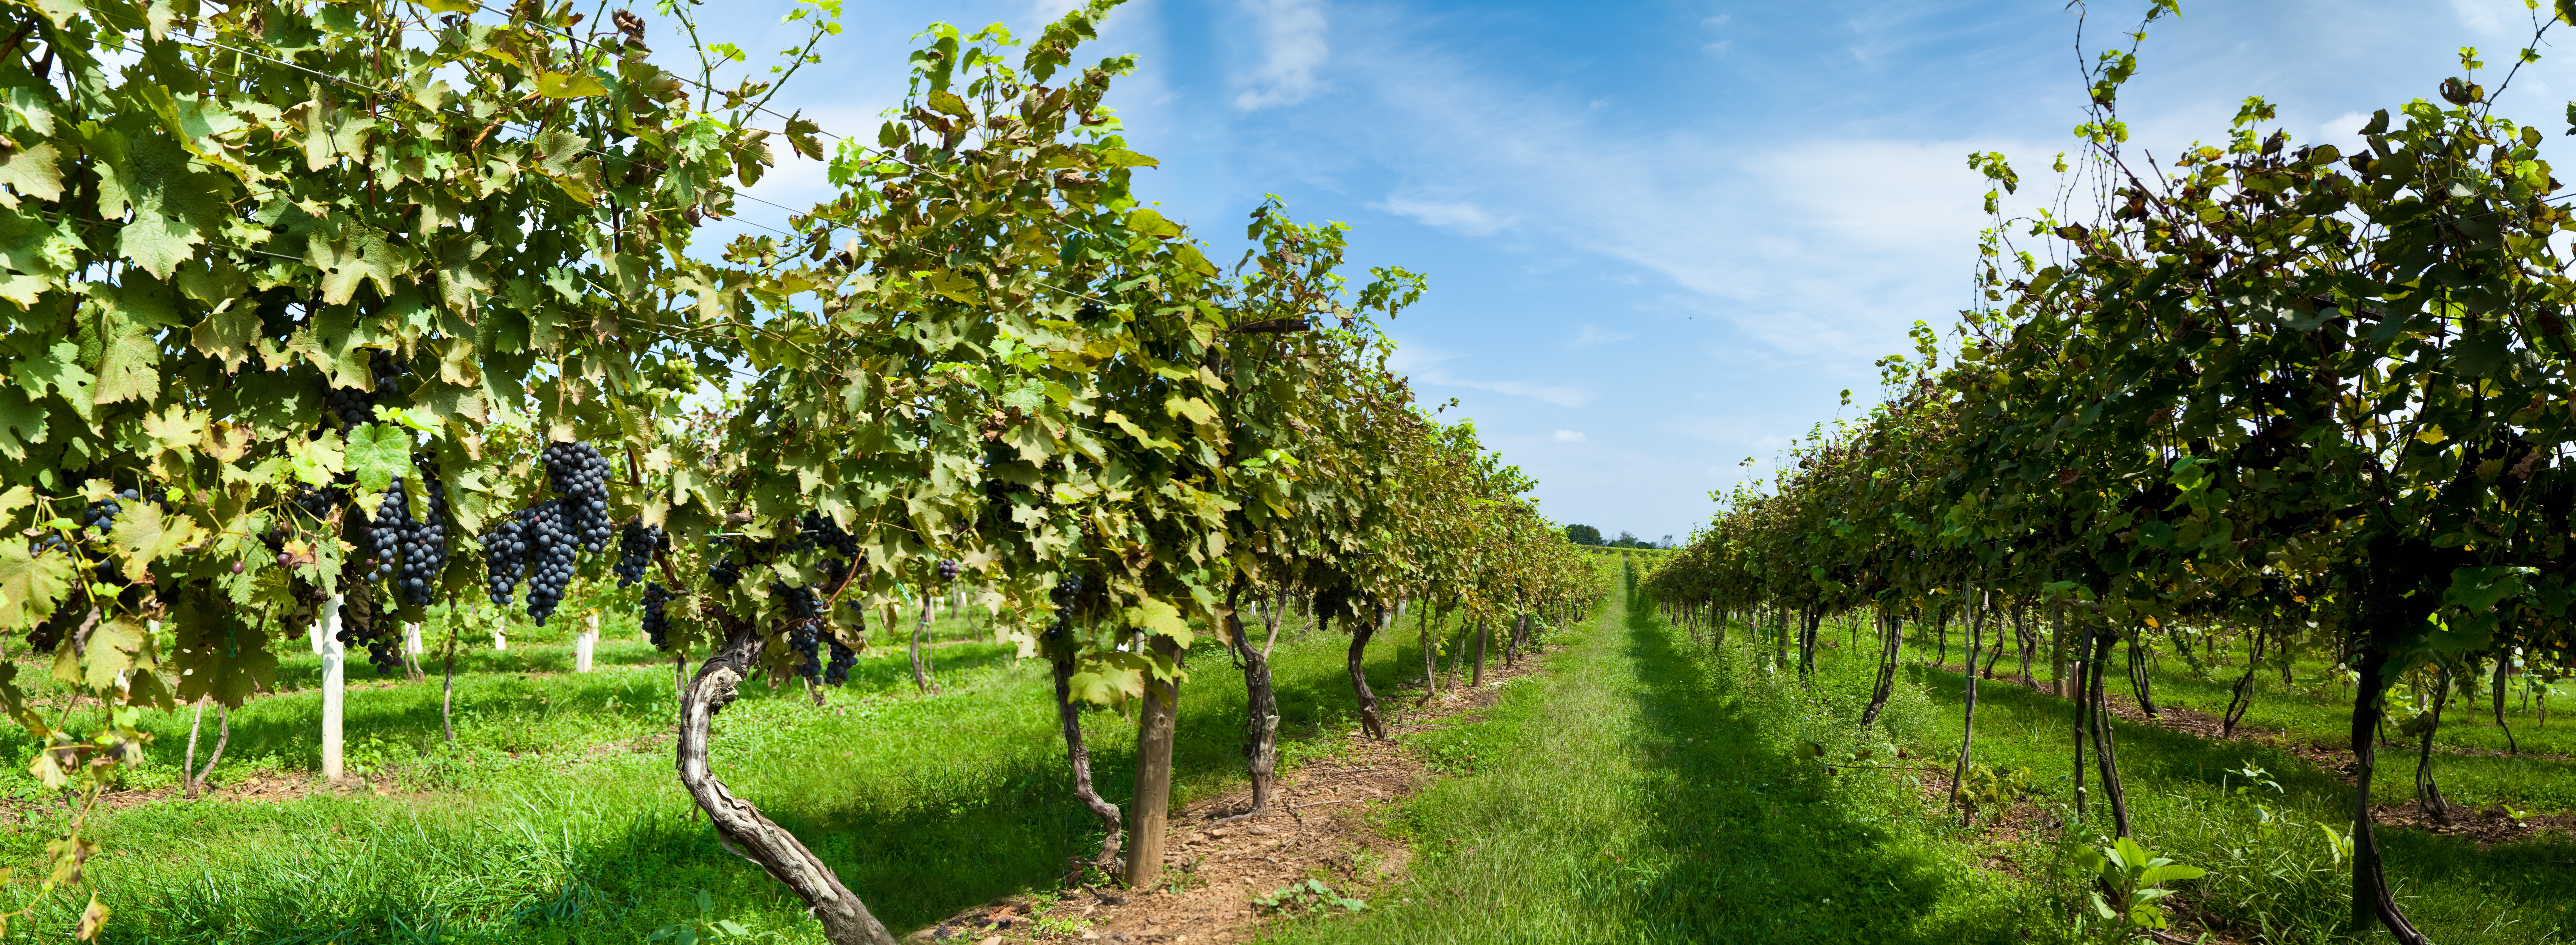 A vineyard with ripe red grapes ready to harvest.I invite you to view some of my other agricultural Images: